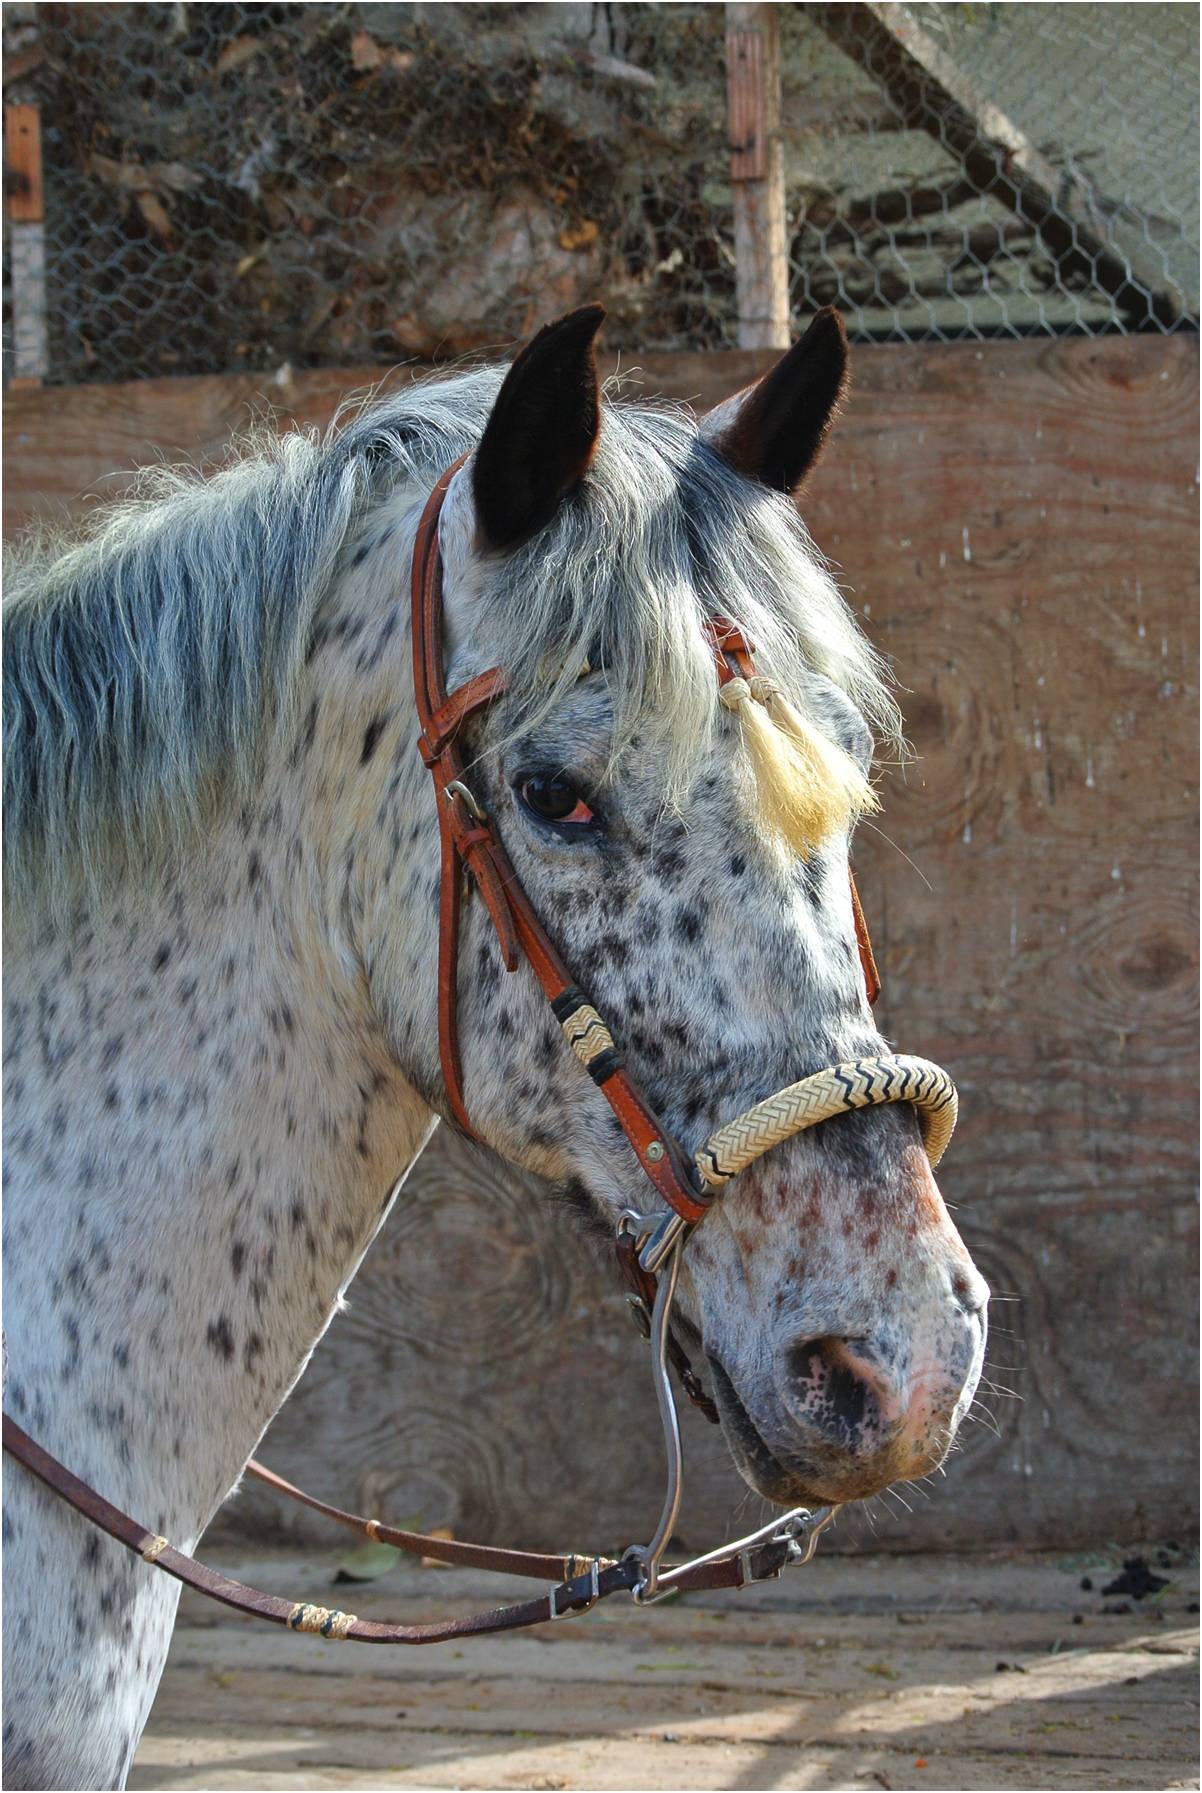 Cheeto - Appaloosa GeldingCheeto came to us a few years ago extremely frightened with visible scars and signs of previous abuse. Through the consistent care and love of our staff and volunteers, Cheeto has become a gentle and affectionate guy and we are so grateful to have him as part of our family.